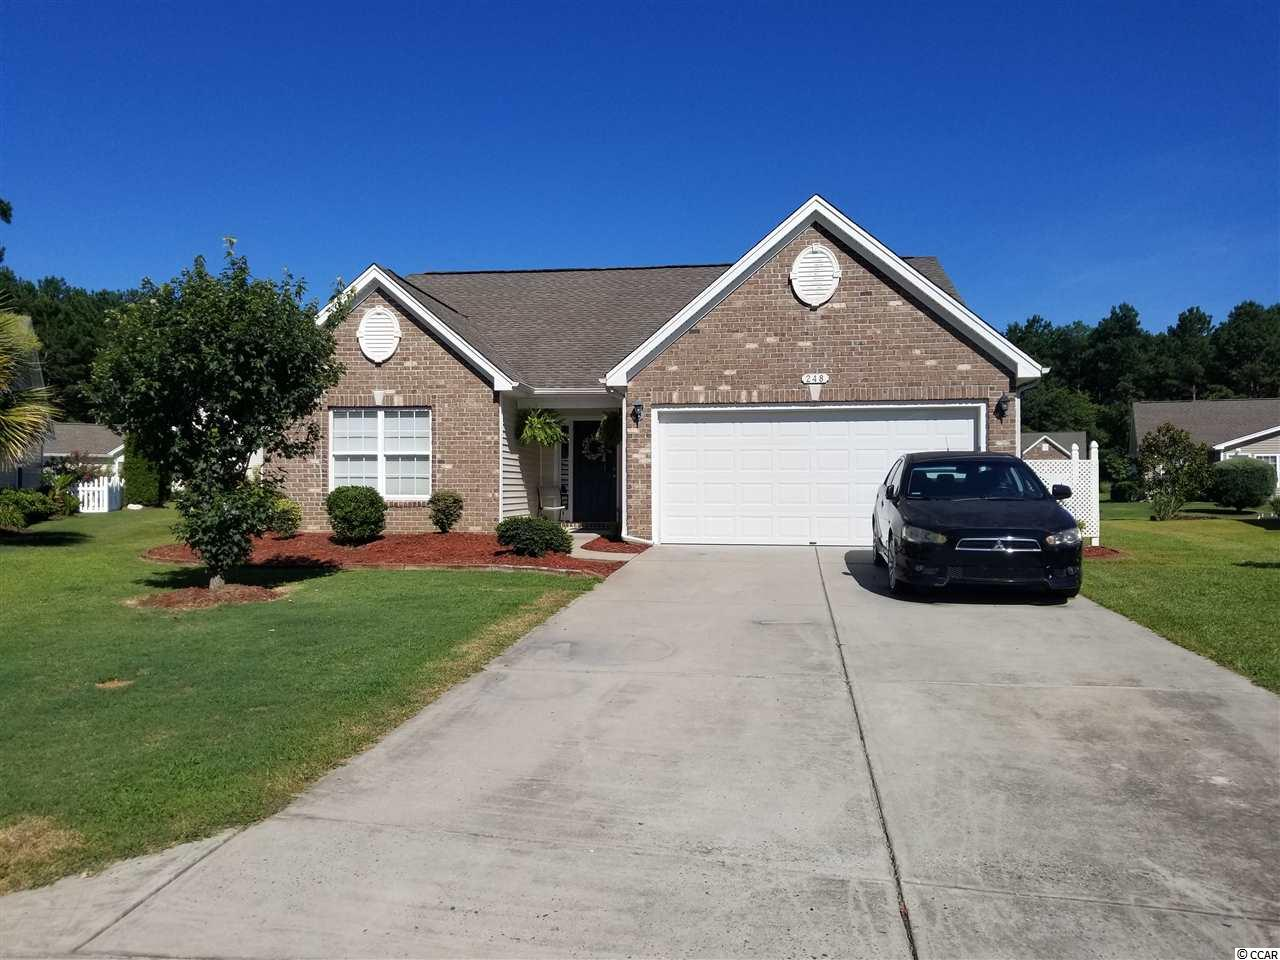 Spacious 3 bedroom, 2 bath home located in the highly desired International Club in Murrells Inlet. This home features an open floor plan, large lot on cul-de-sac, and all home furnishings and decor are negotiable. DO NOT miss this opportunity! Conveniently located to area shopping, restaurants, schools, The Murrells Inlet Marshwalk, and area beaches.